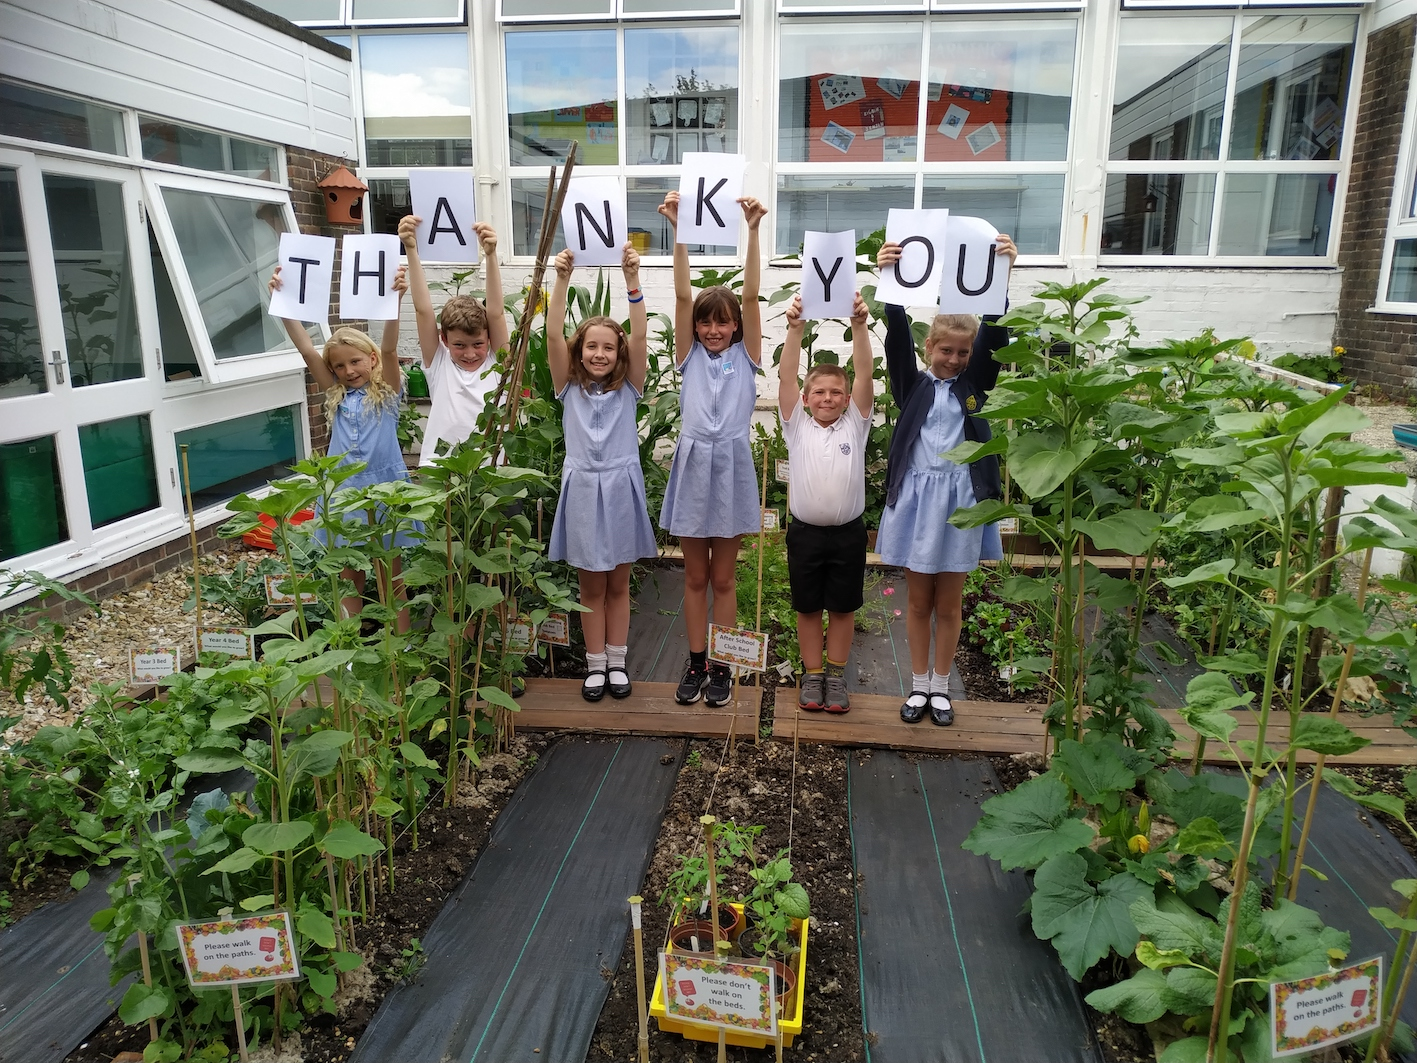 Big Thank you from CJS Gardening Club